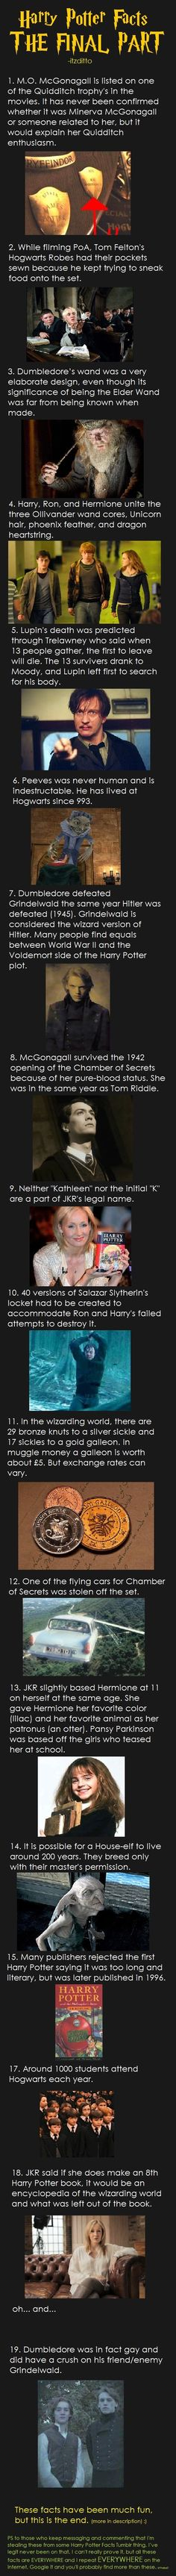 found some Harry Potter facts for y'all - Imgur